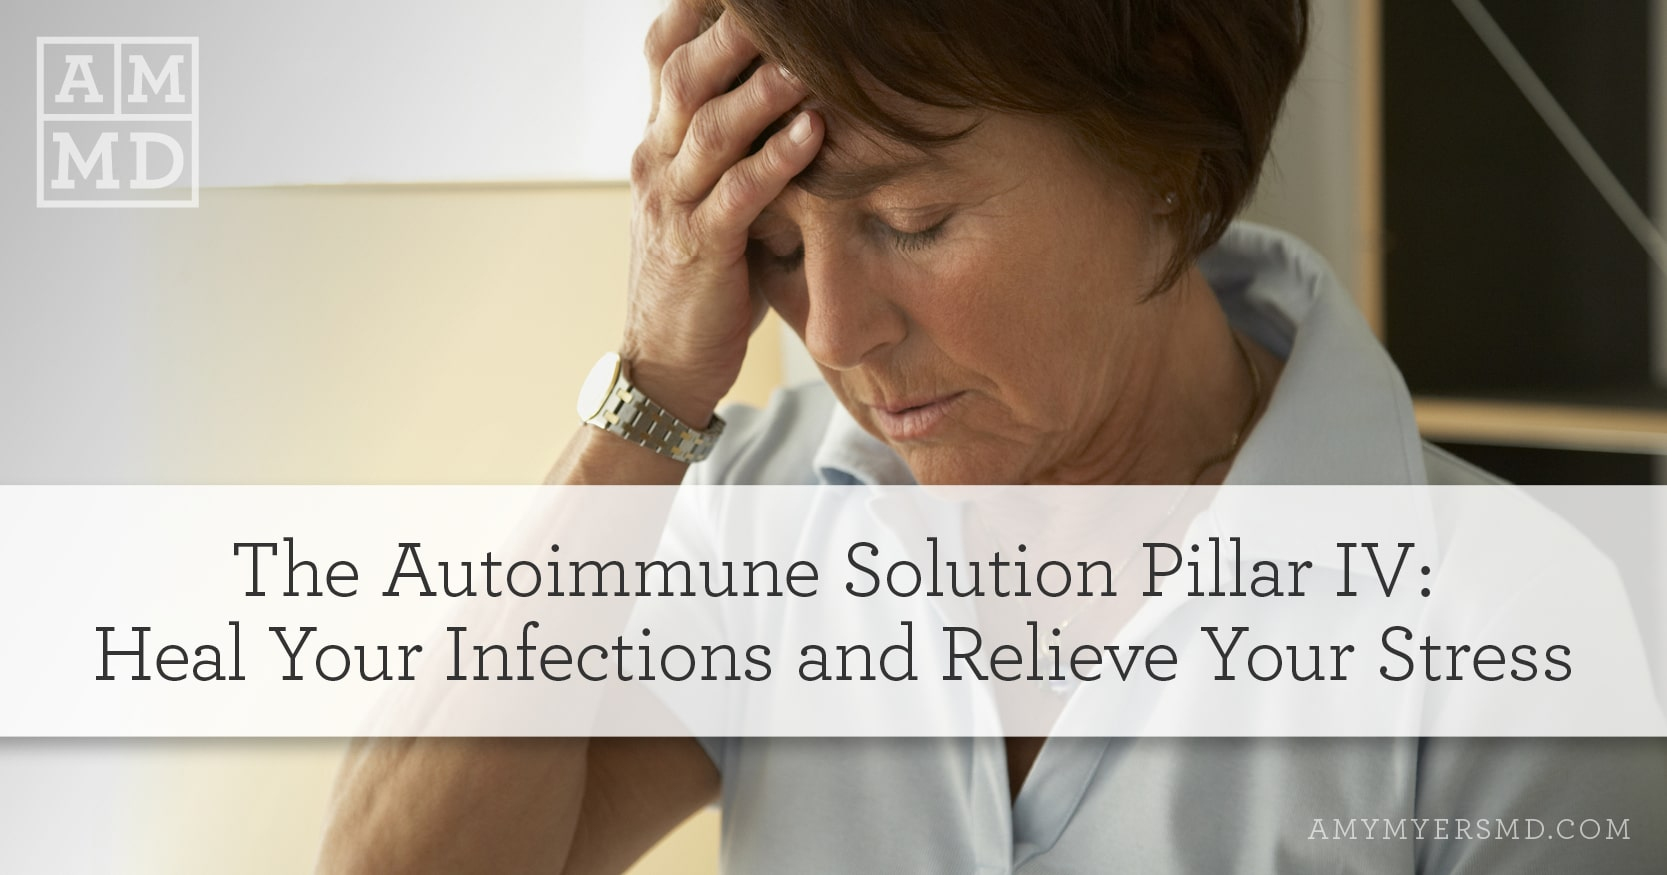 Heal Your Infections and Relieve Your Stress - Woman Under Stress - Featured Image - Amy Myers MD